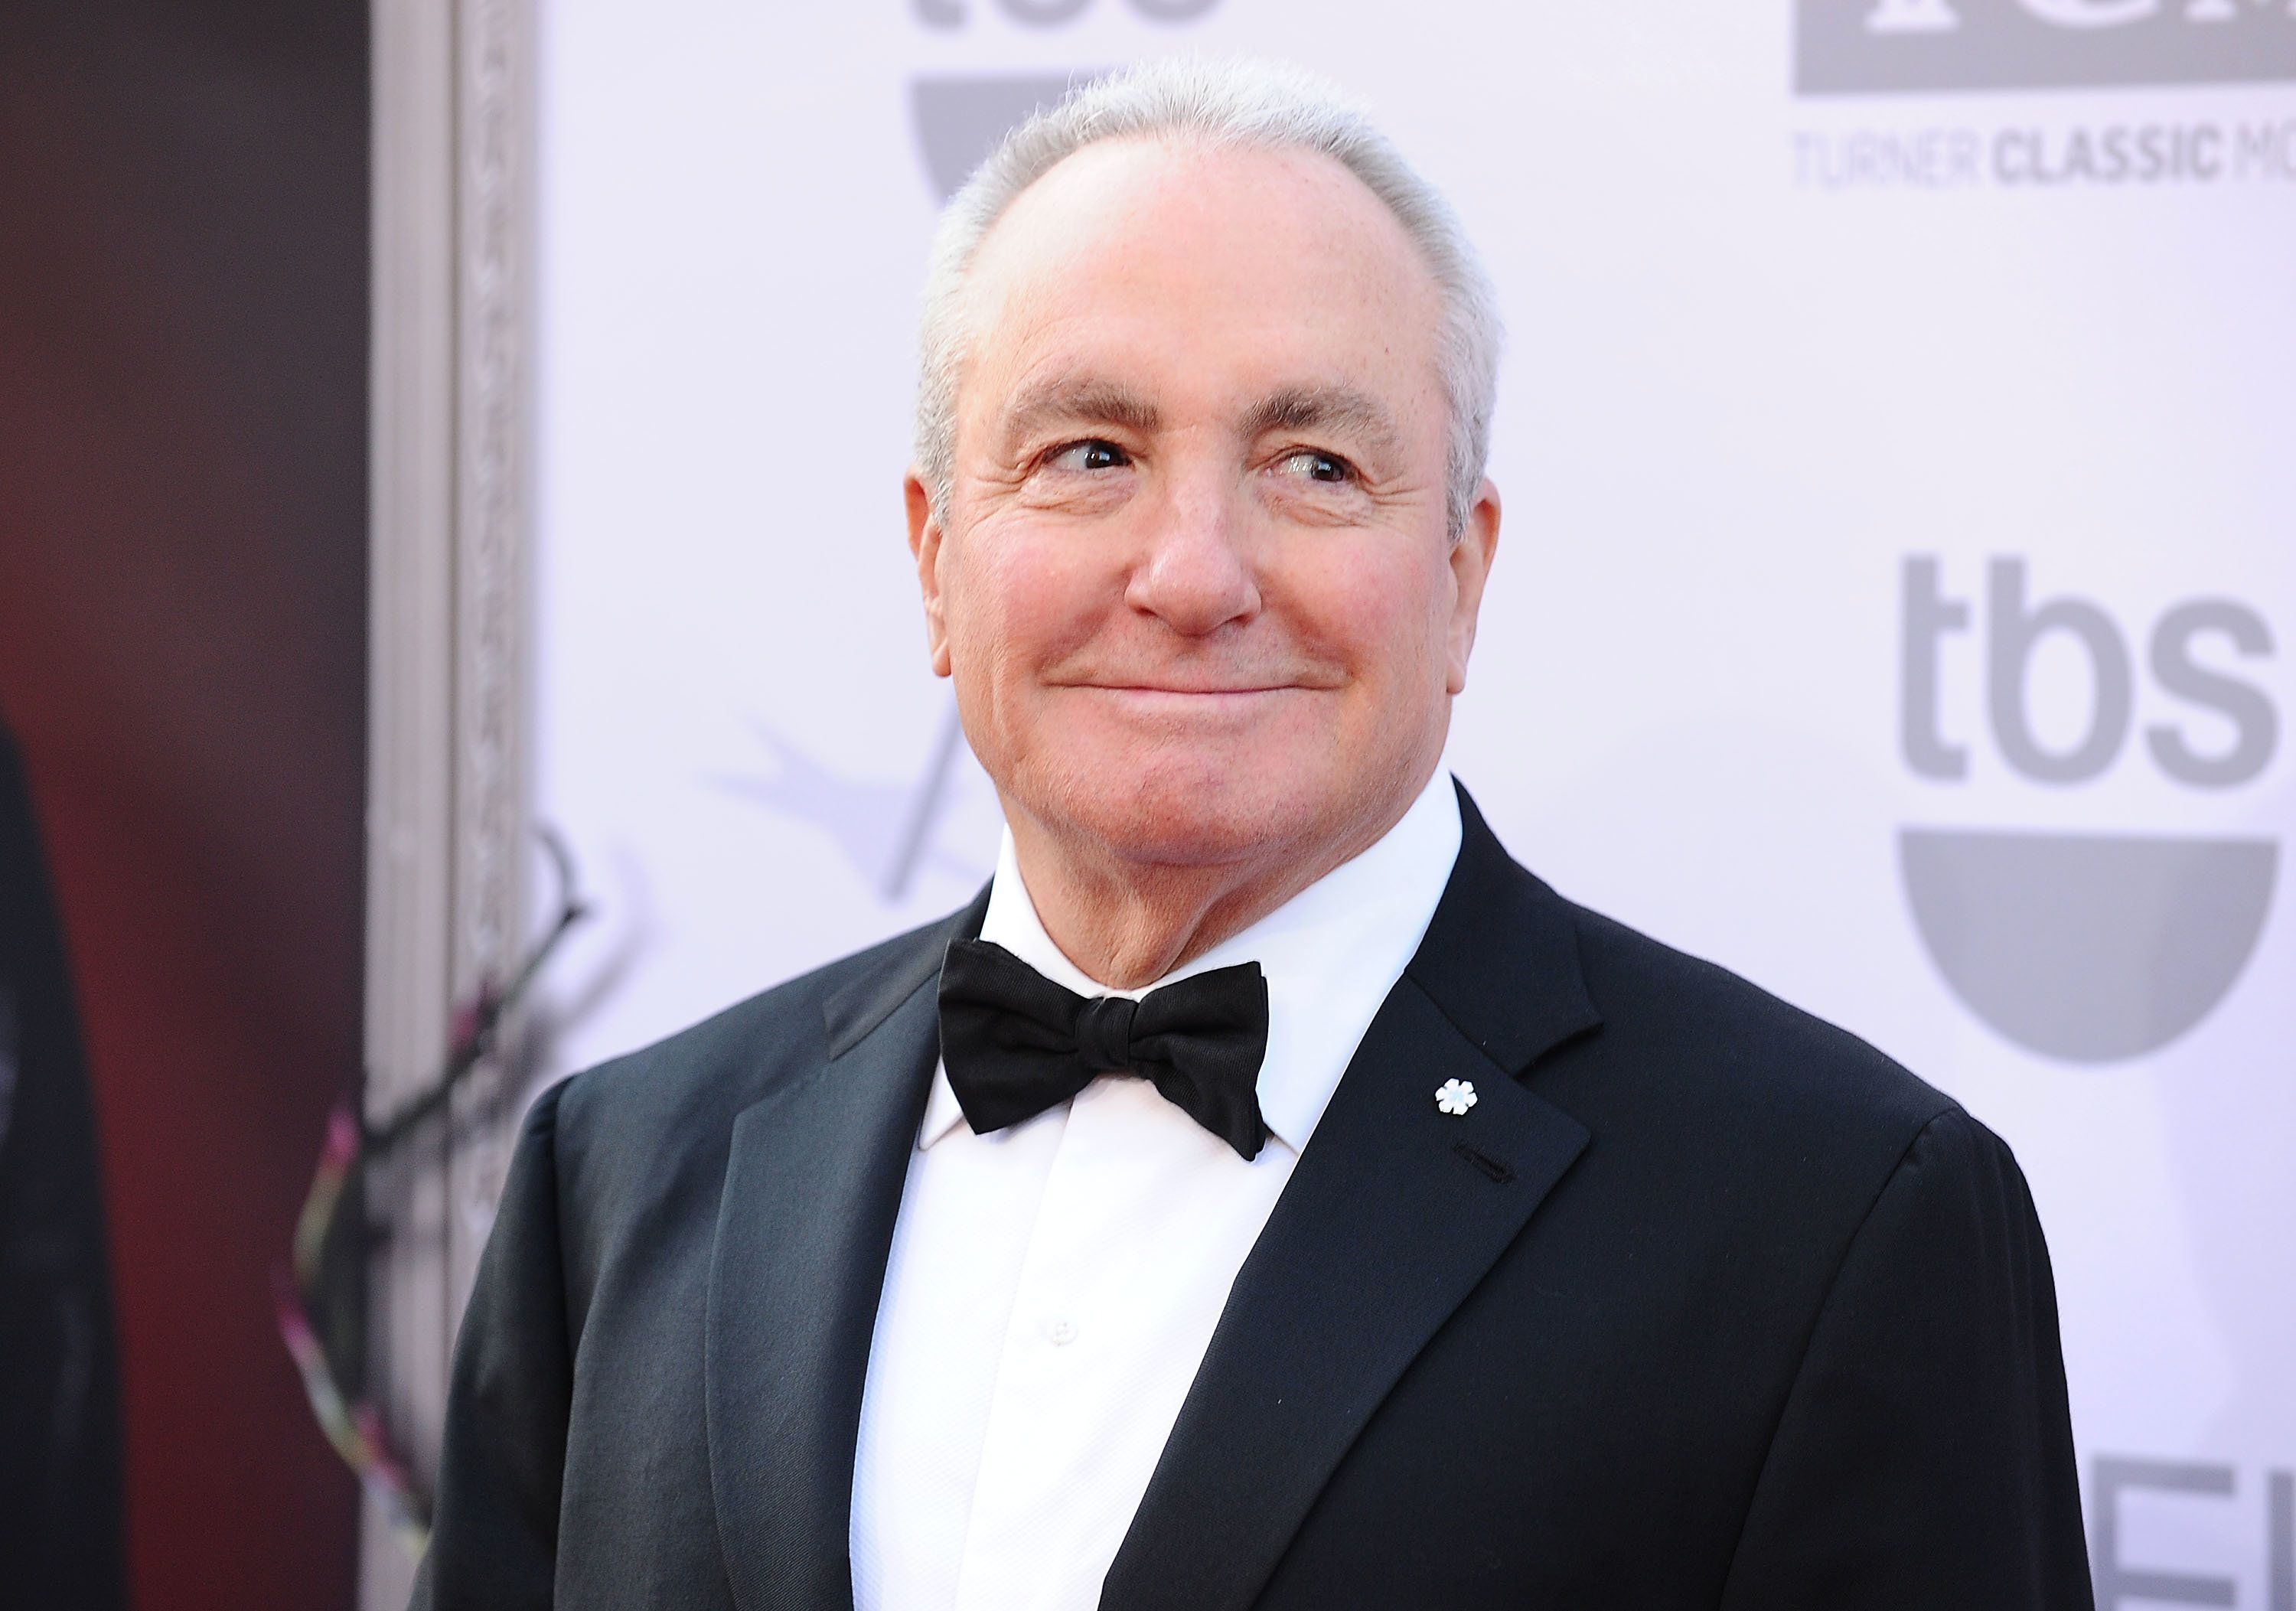 HOLLYWOOD, CA - JUNE 04:  Producer Lorne Michaels attends the 43rd AFI Life Achievement Award gala at Dolby Theatre on June 4, 2015 in Hollywood, California.  (Photo by Jason LaVeris/FilmMagic)